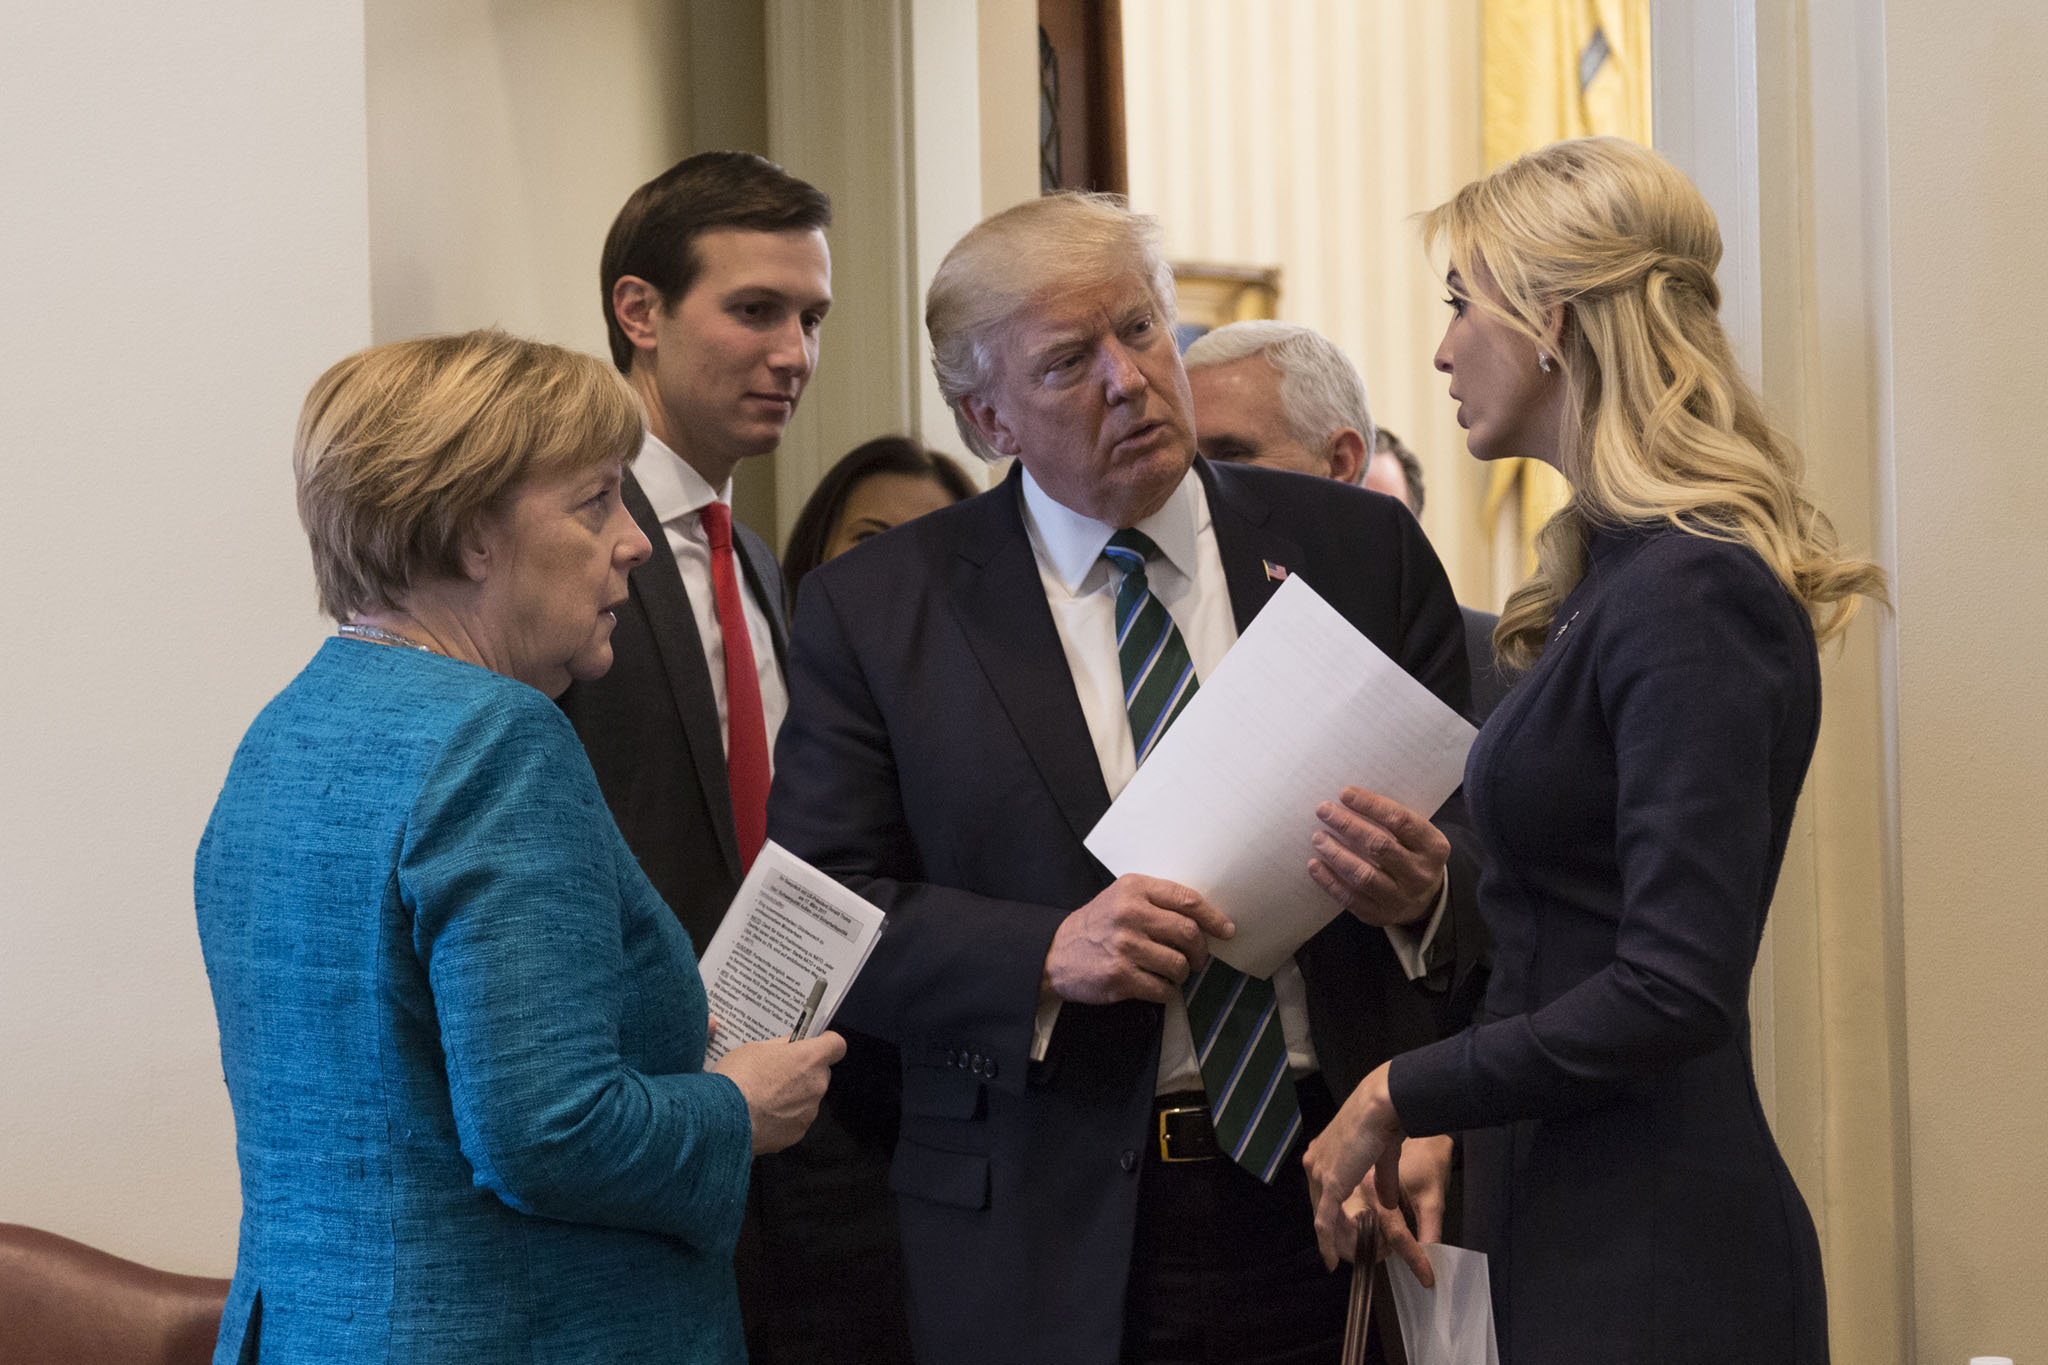 Caption: President Trump and his daughter Ivanka and son-in-law Jared Kushner, who are both Jewish, meet with German Chancellor Angela Merkel (left.), Credit: White House photo